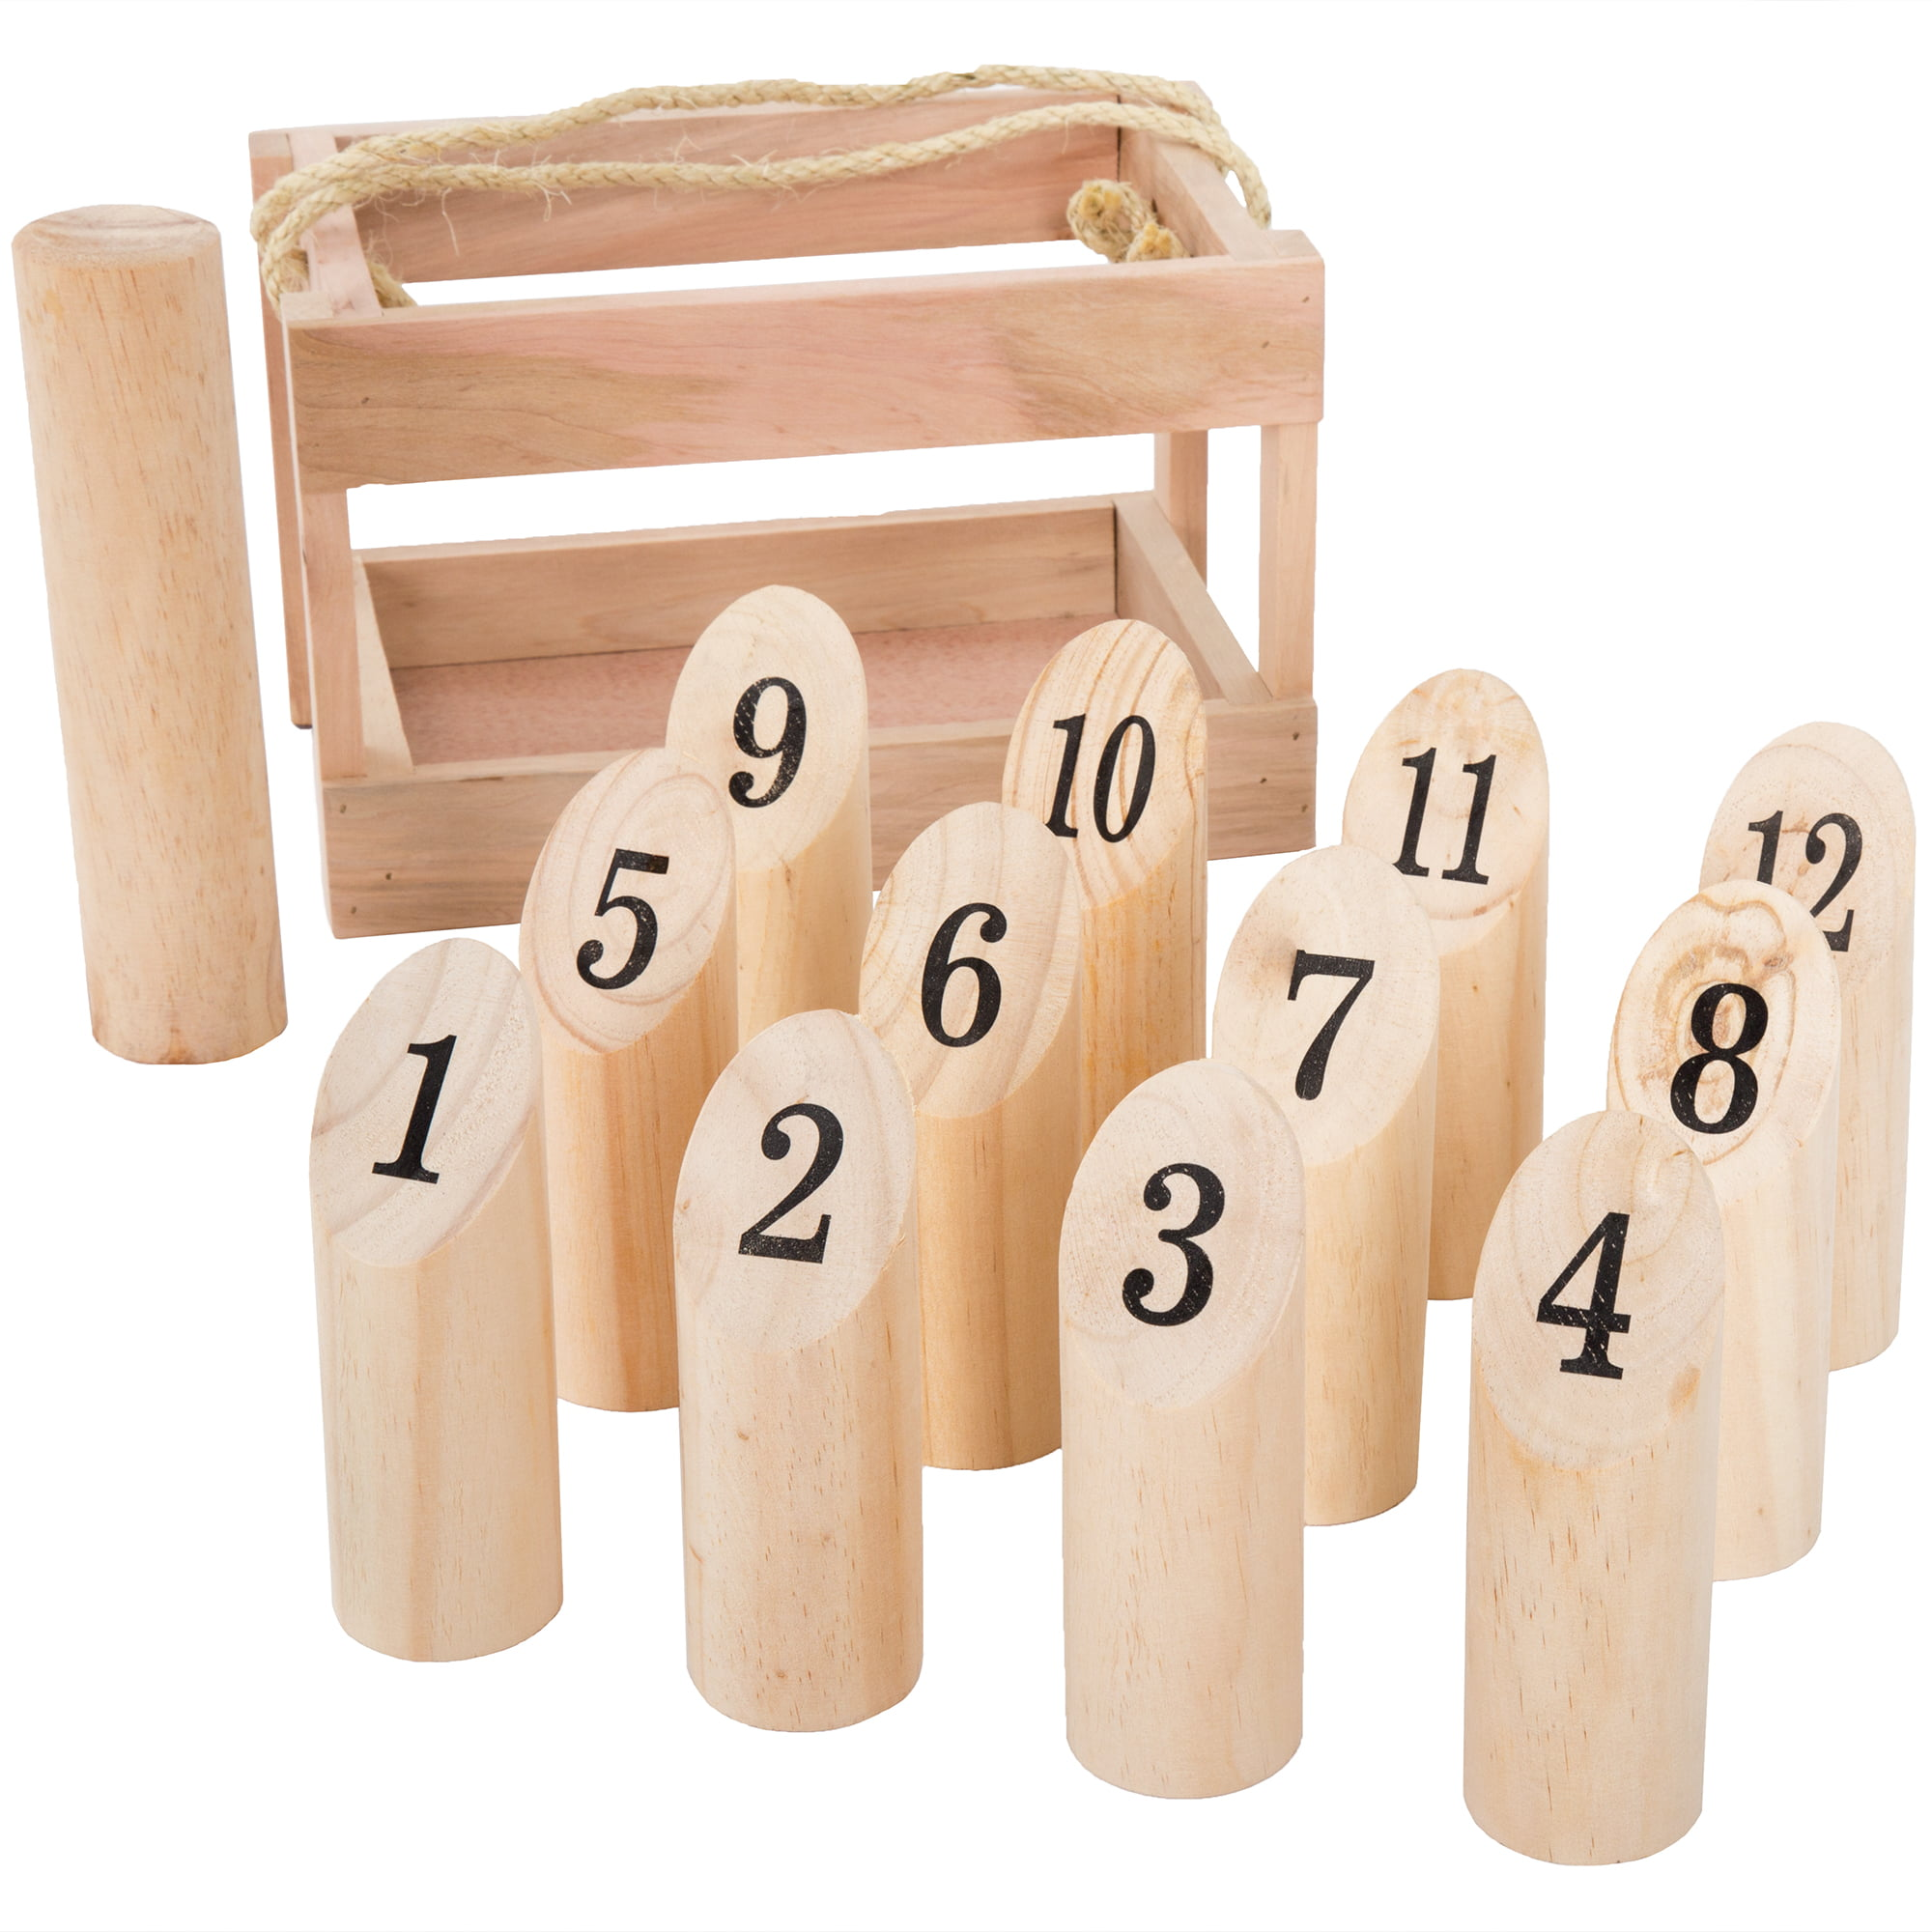 Wooden Throwing Game-Complete Set, 12 Numbered Pins, Throwing Dowel, Carrying Crate-Outdoor Lawn Games For Adults and... by Trademark Global LLC